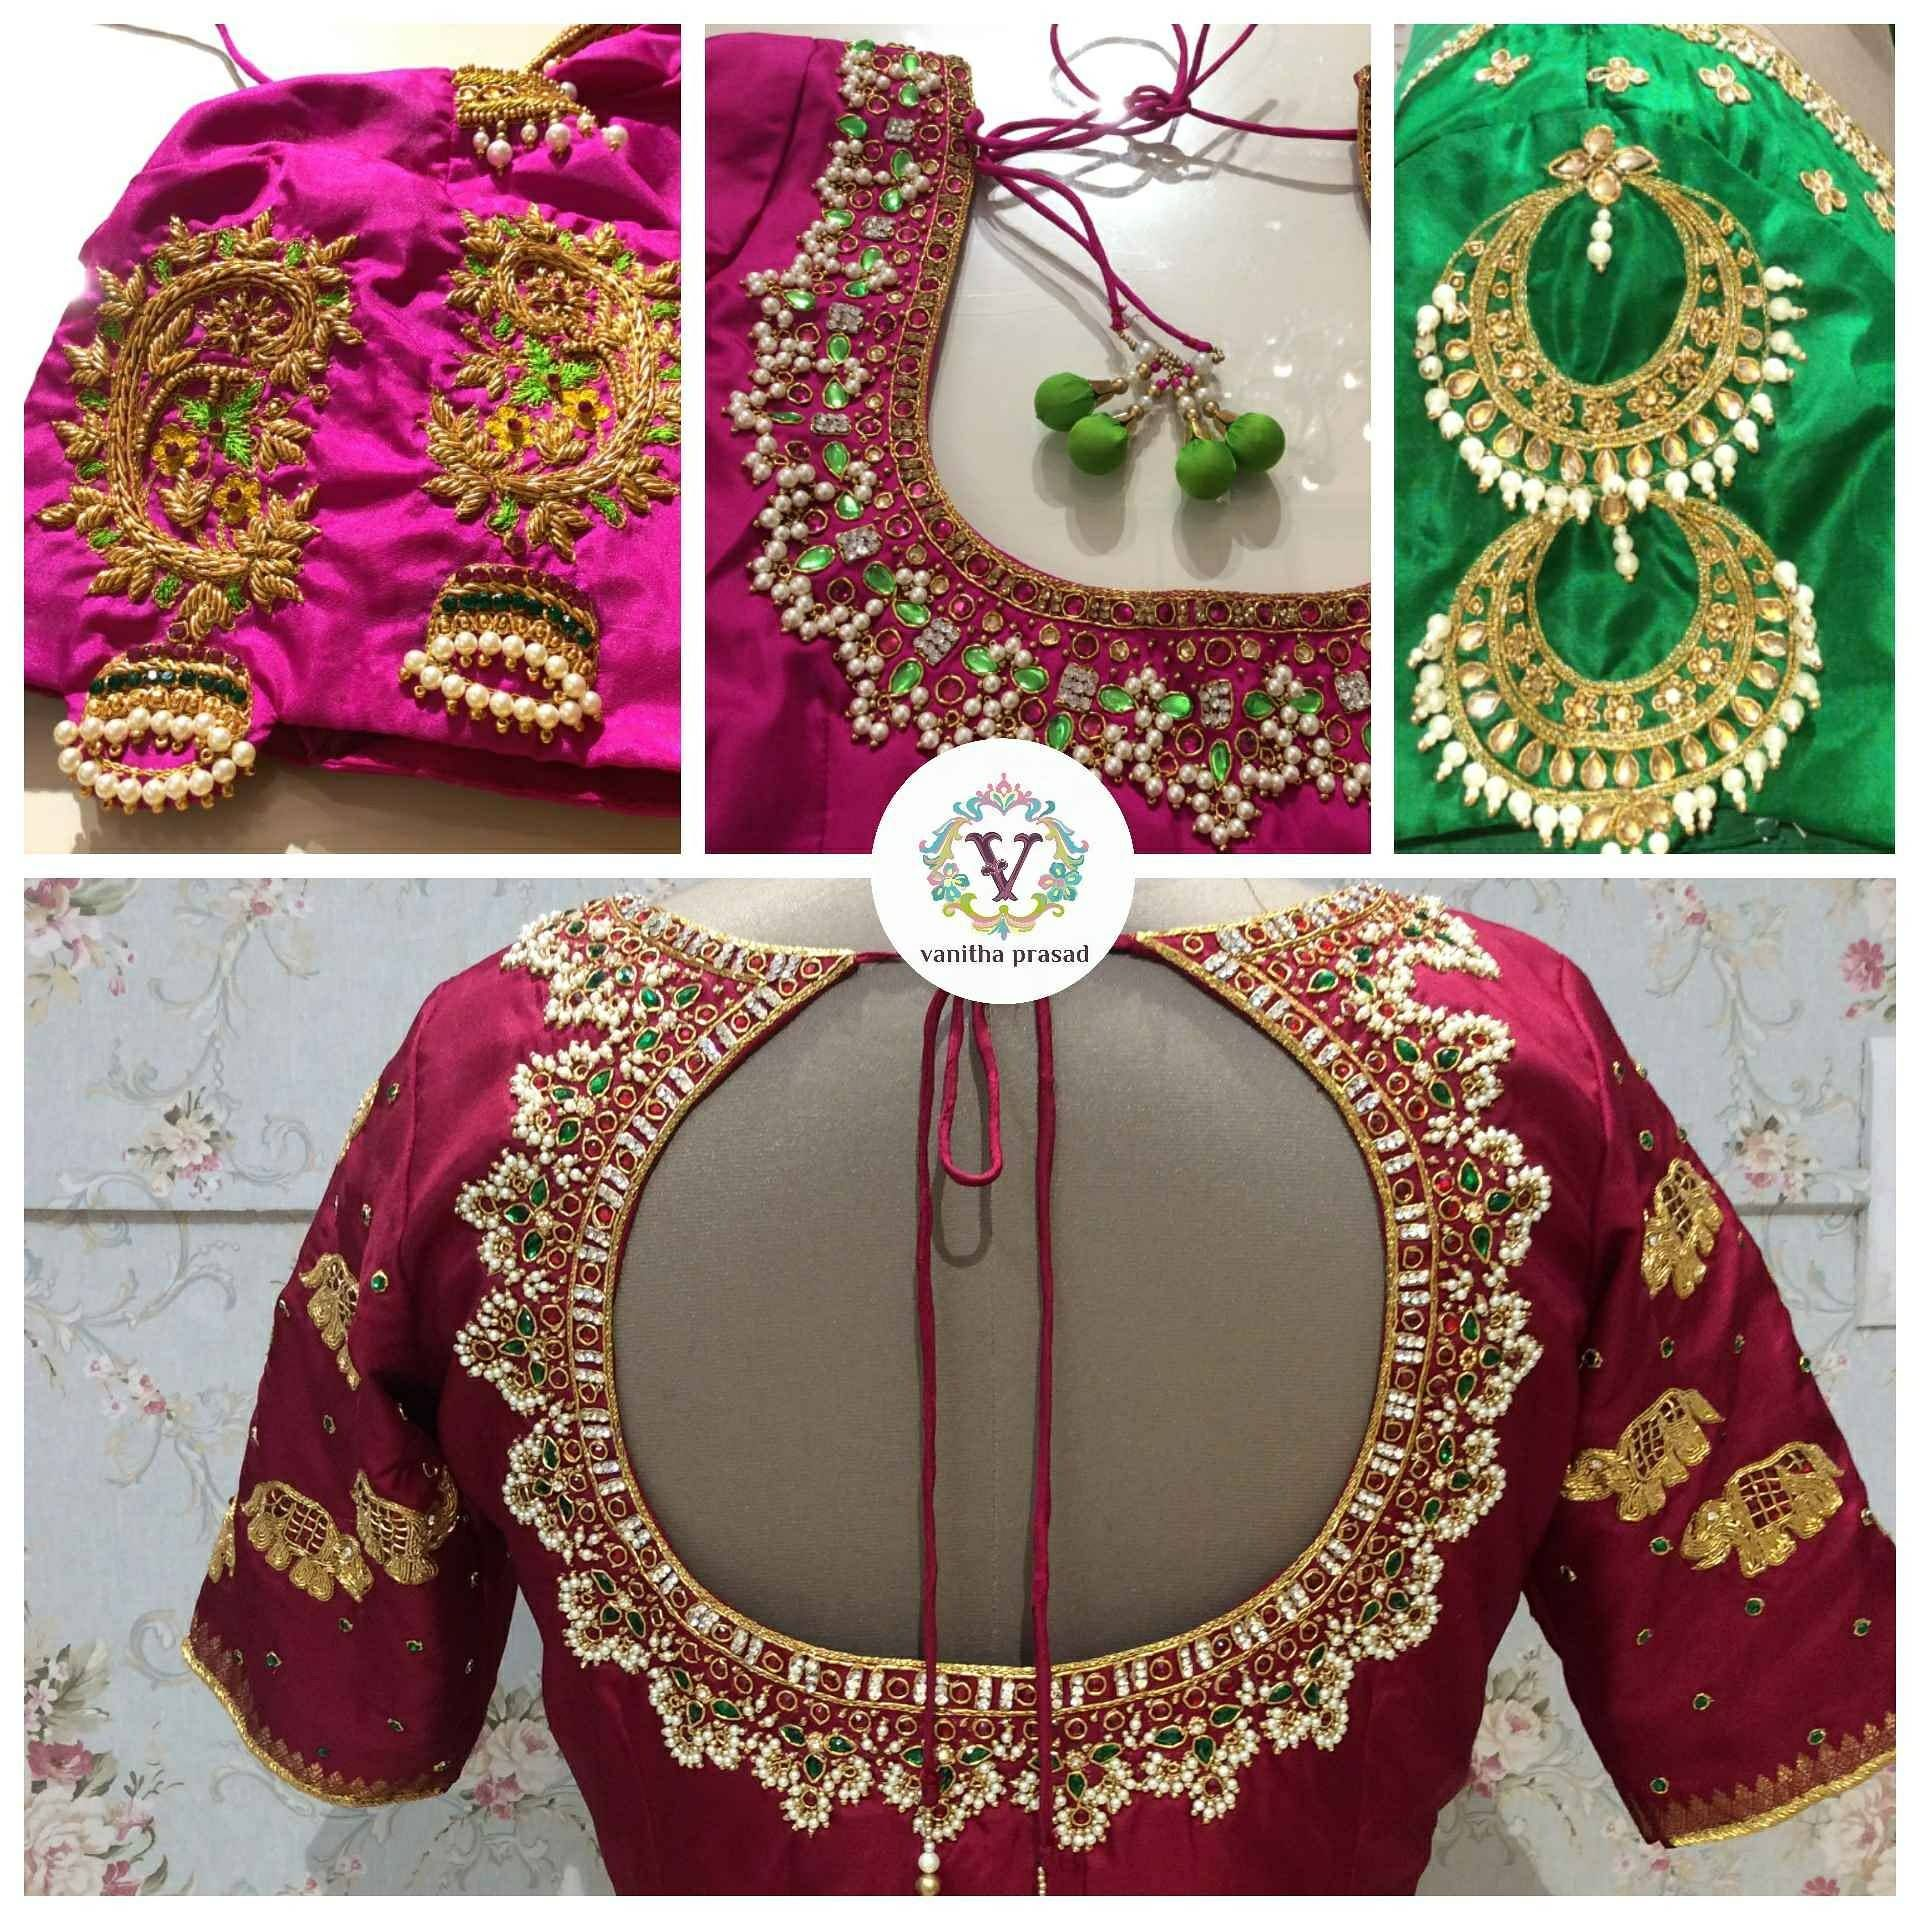 Ornate jewellery inspired hand embroidered blouse designs